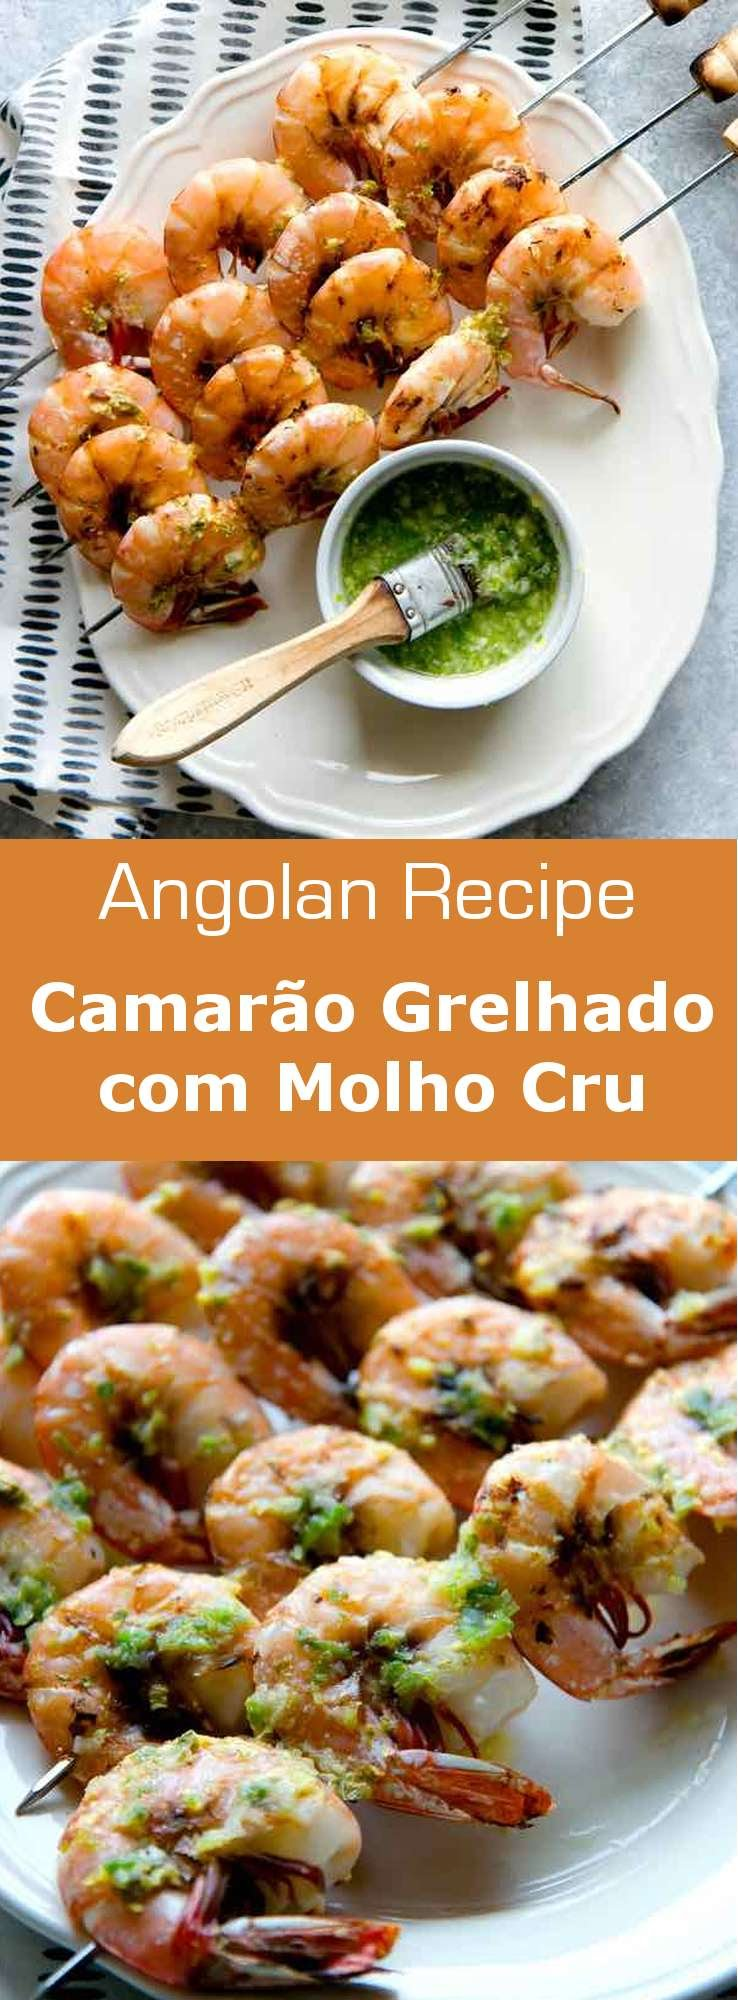 Camarão grelhado com molho cru is a grilled prawn dish from Angola prepared with a delicious marinade of scallions, garlic, cumin, and white wine vinegar. #Angola #AngolanCuisine #WorldCuisine #196flavors